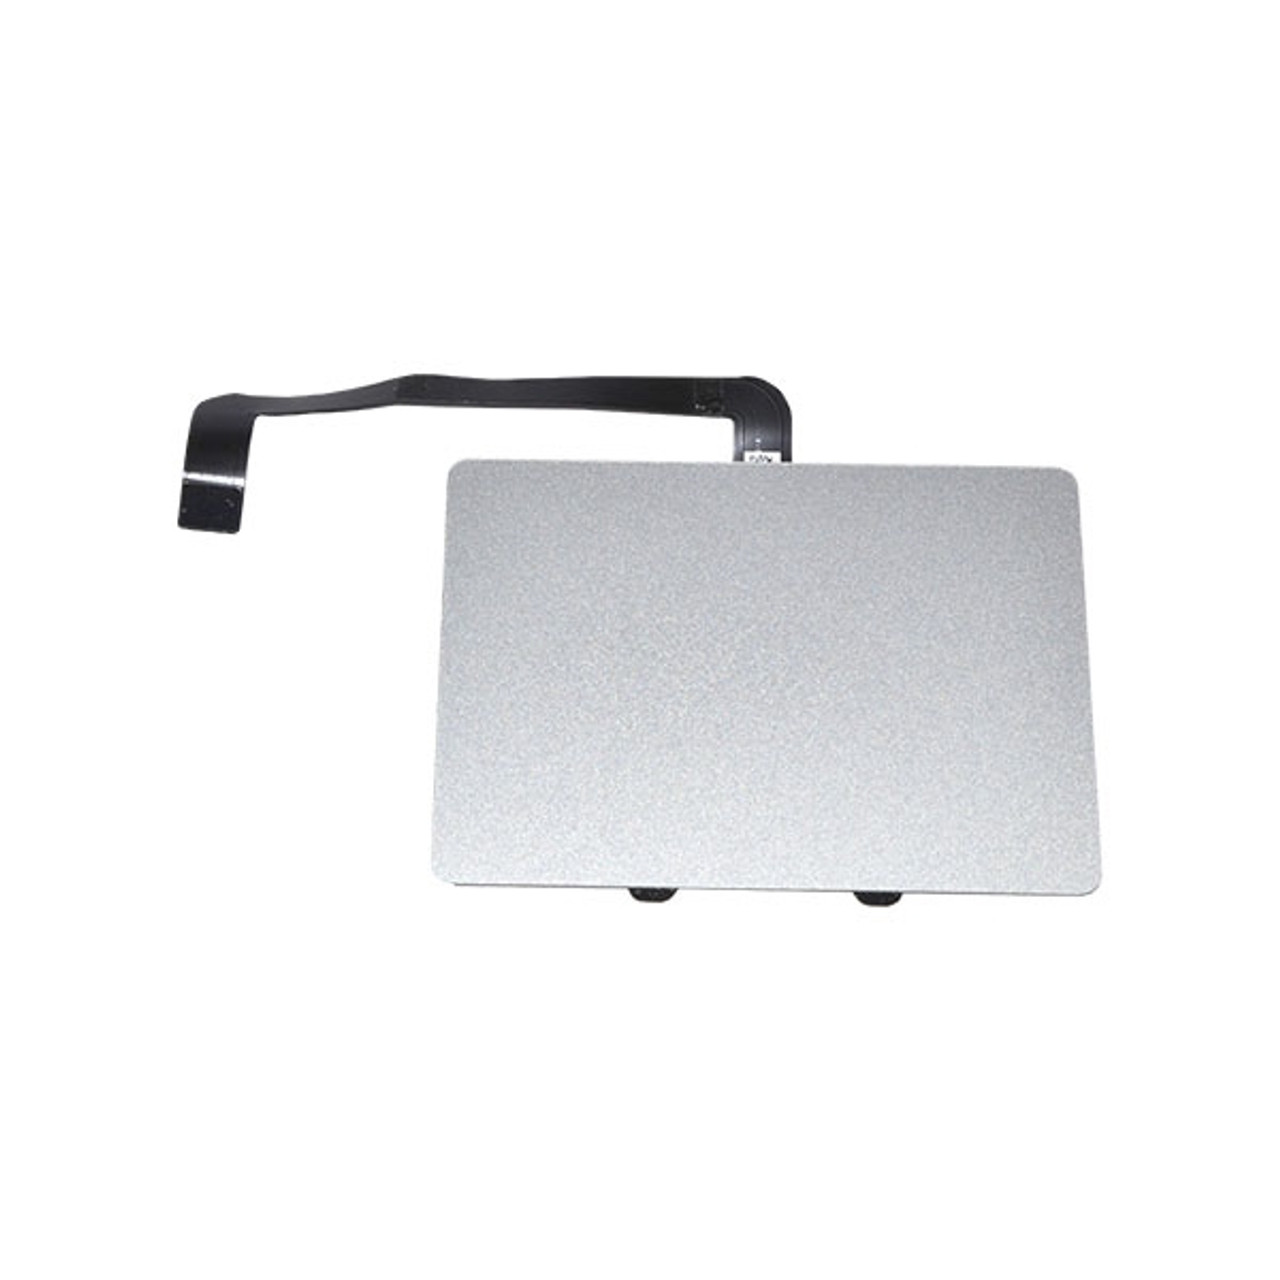 Apple Trackpad Assembly for MacBook Pro 15-inch Unibody 2009-2010 922-9306  - Good Condition